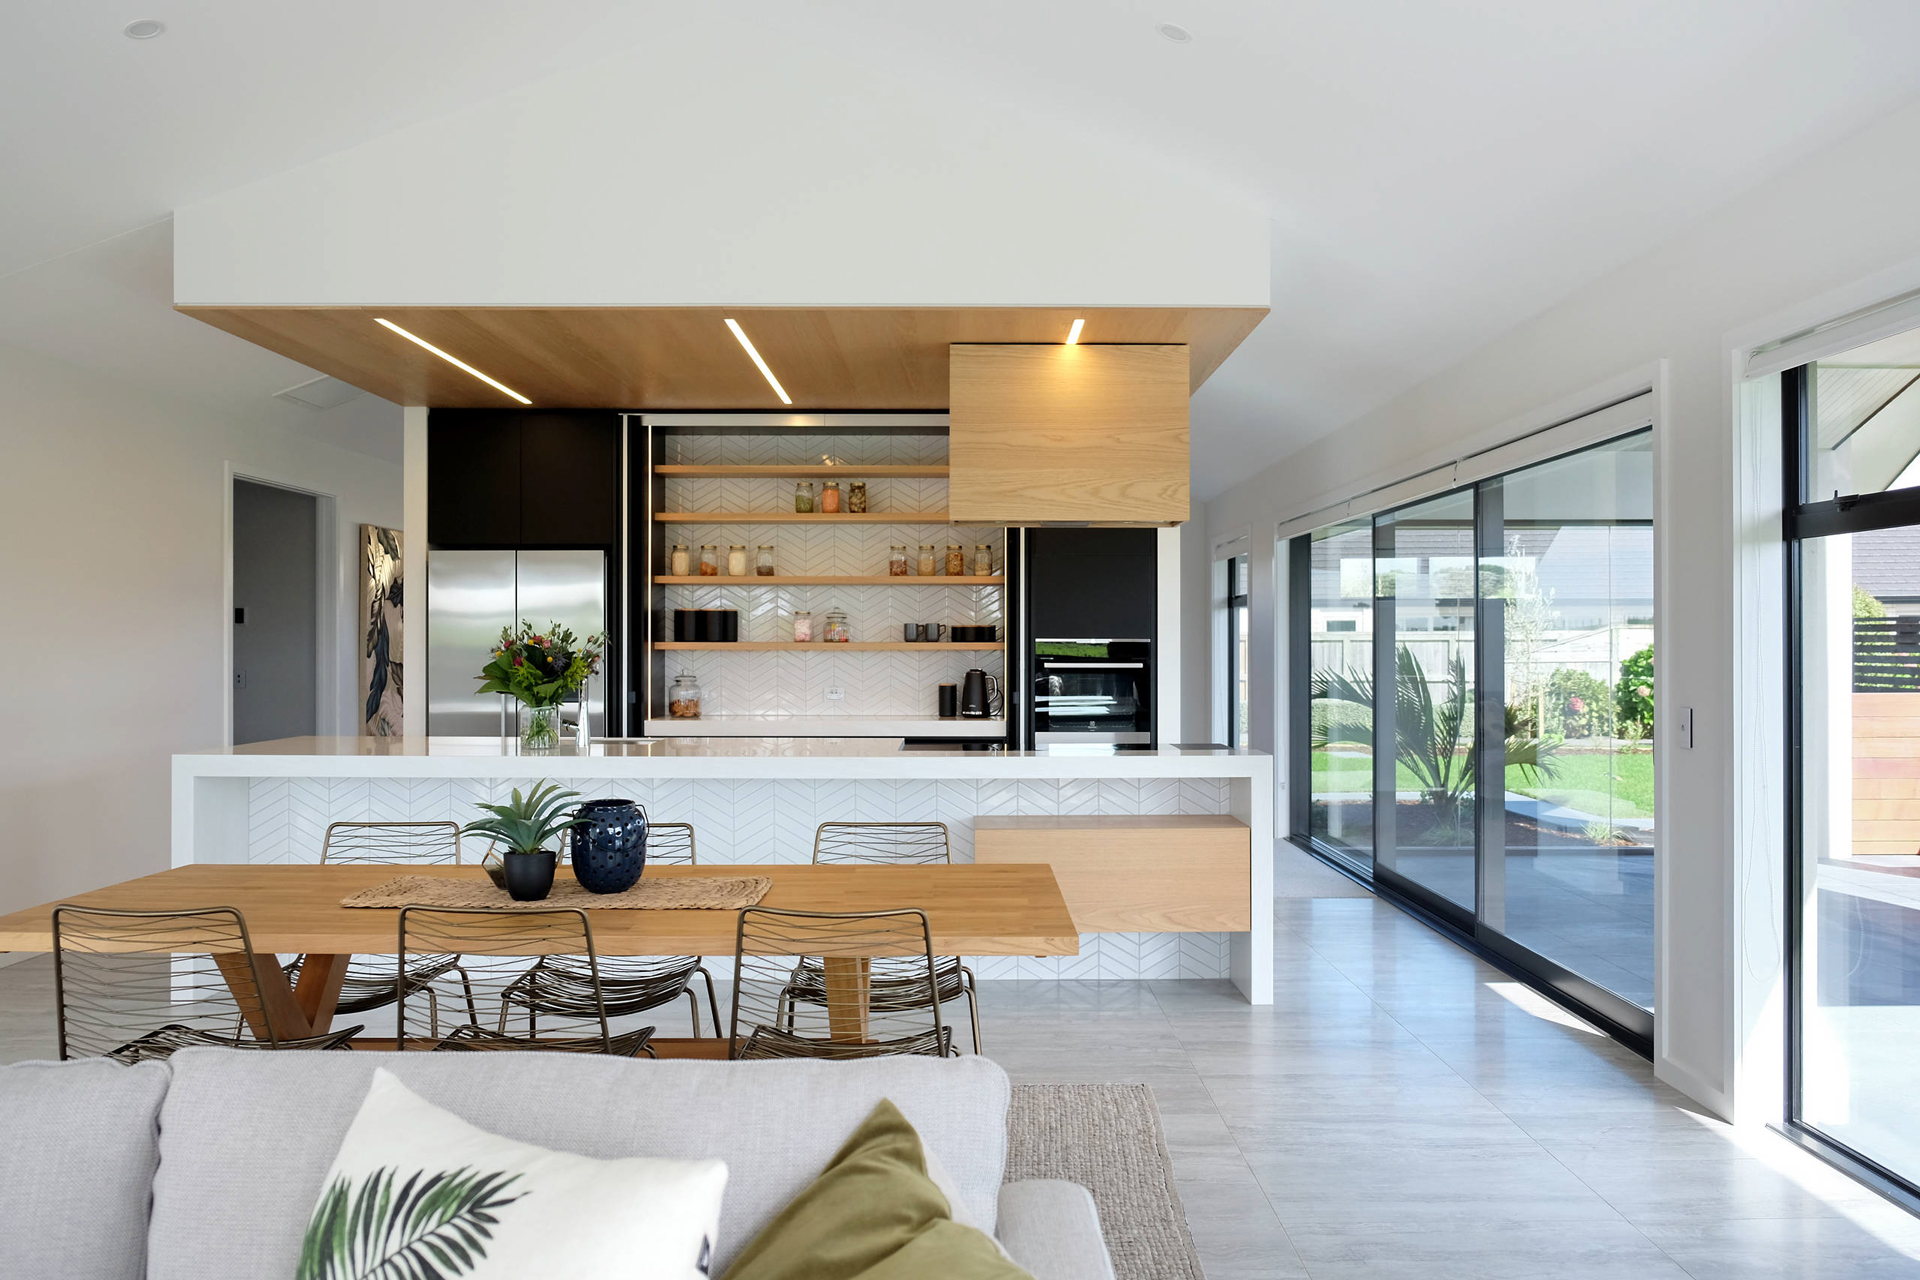 This stunning space uses a simple crisp palette to ground and defines the space beautifully.